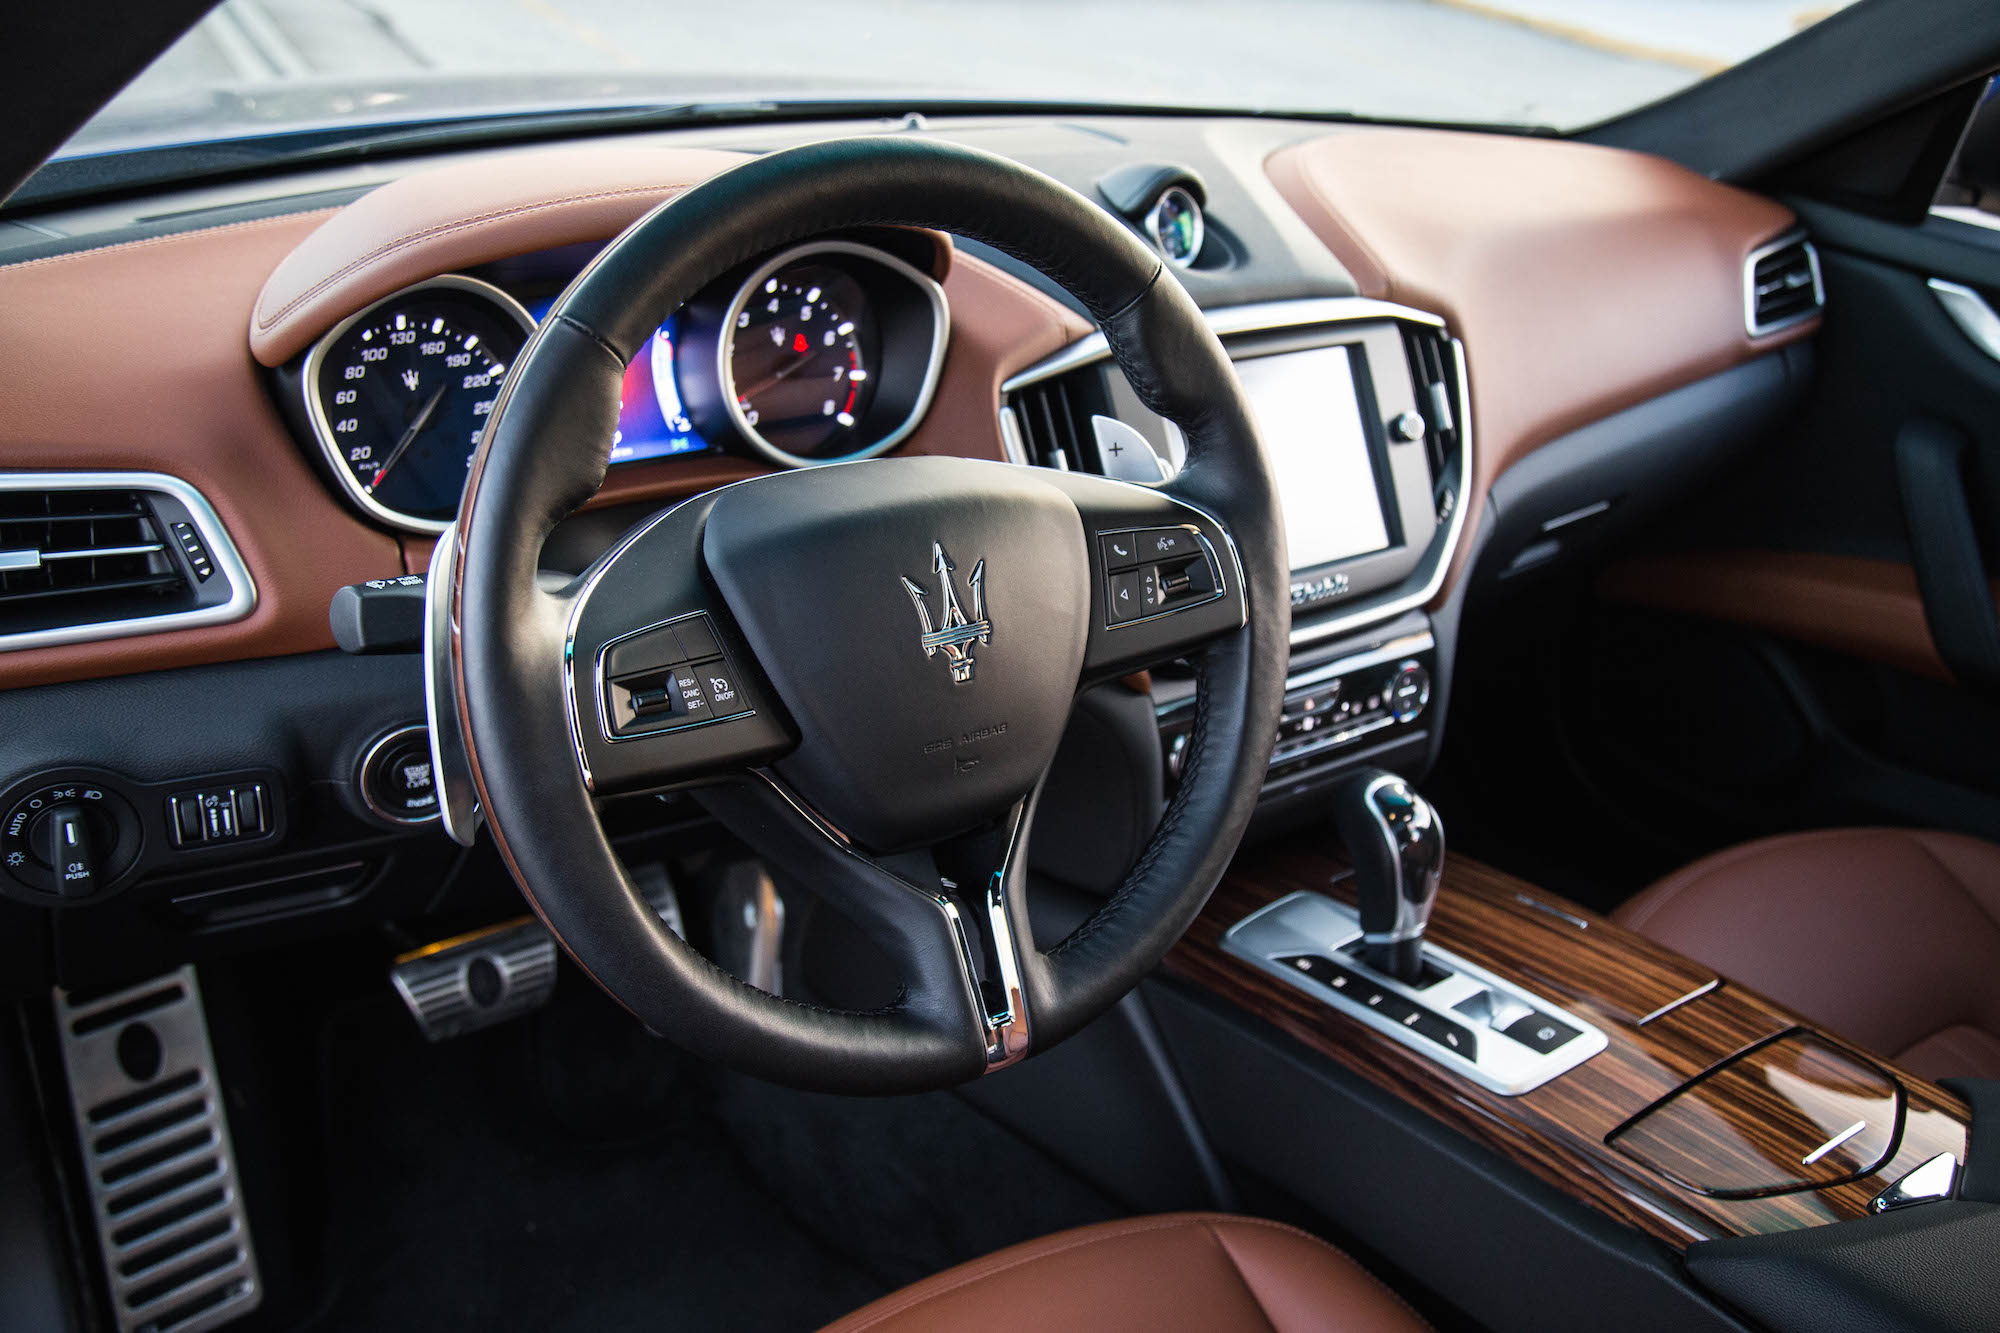 review: 2016 maserati ghibli s q4 | canadian auto review